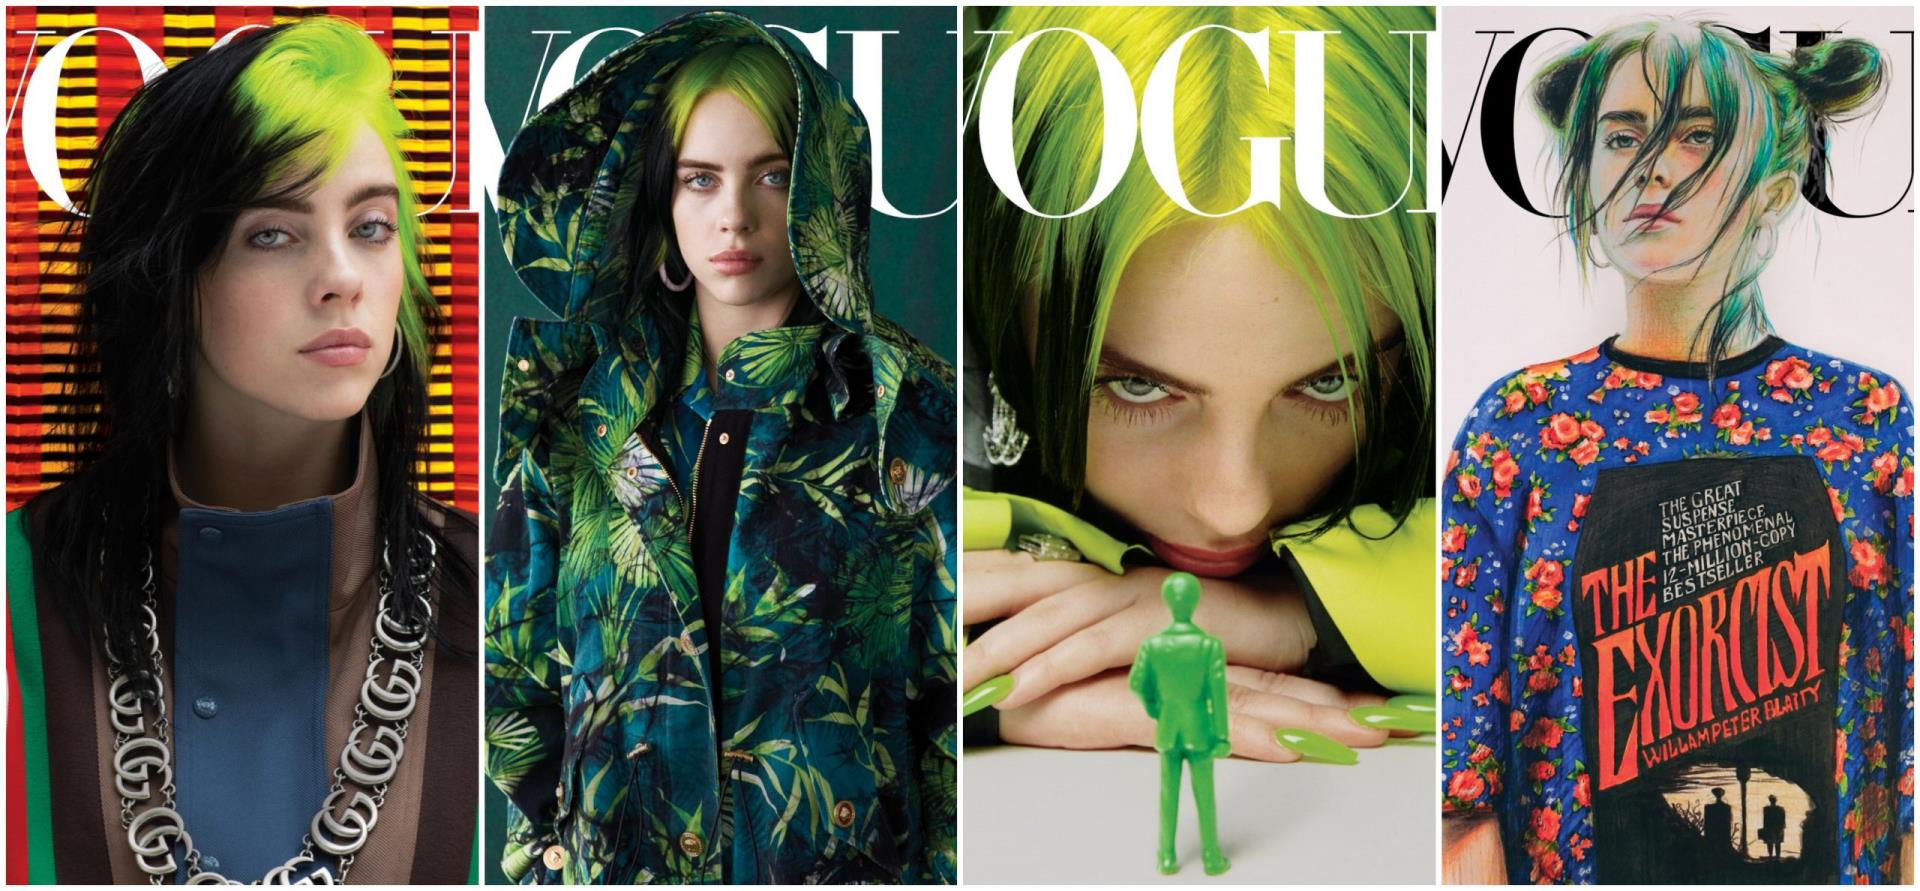 3893540593791705 Billie-Eilish-Lands-First-American-Vogue-Cover-01-scaled